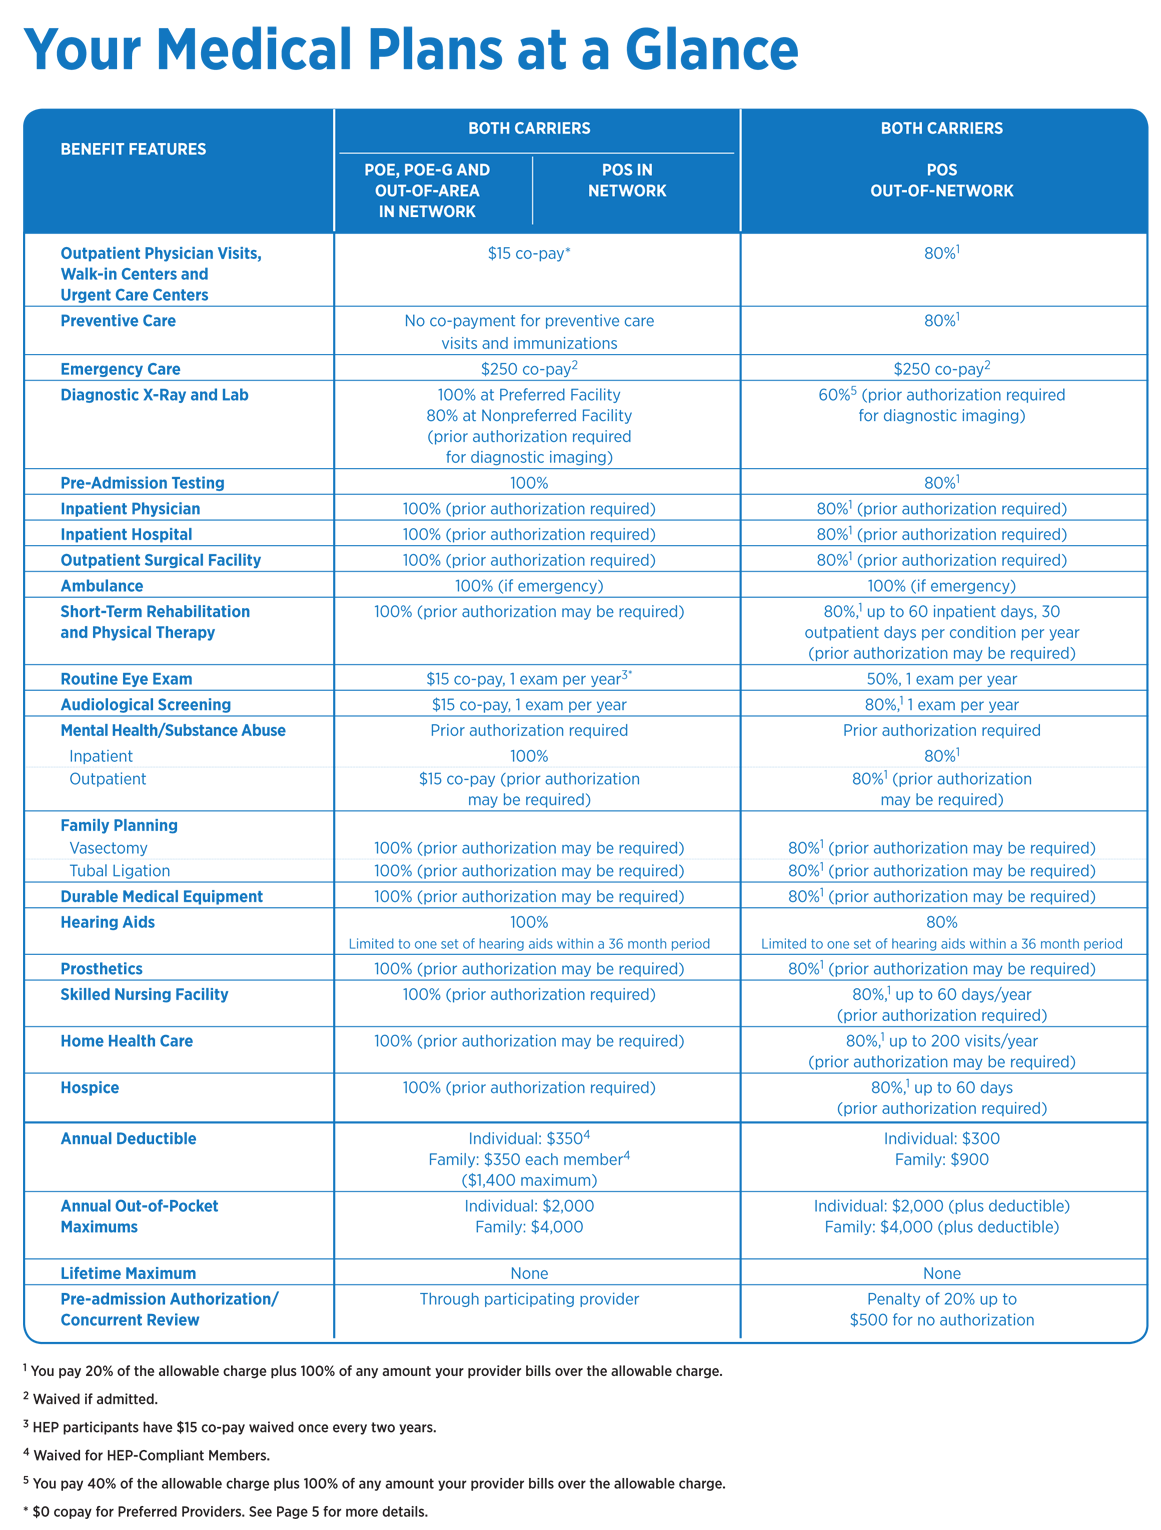 Overview of Medical Plans